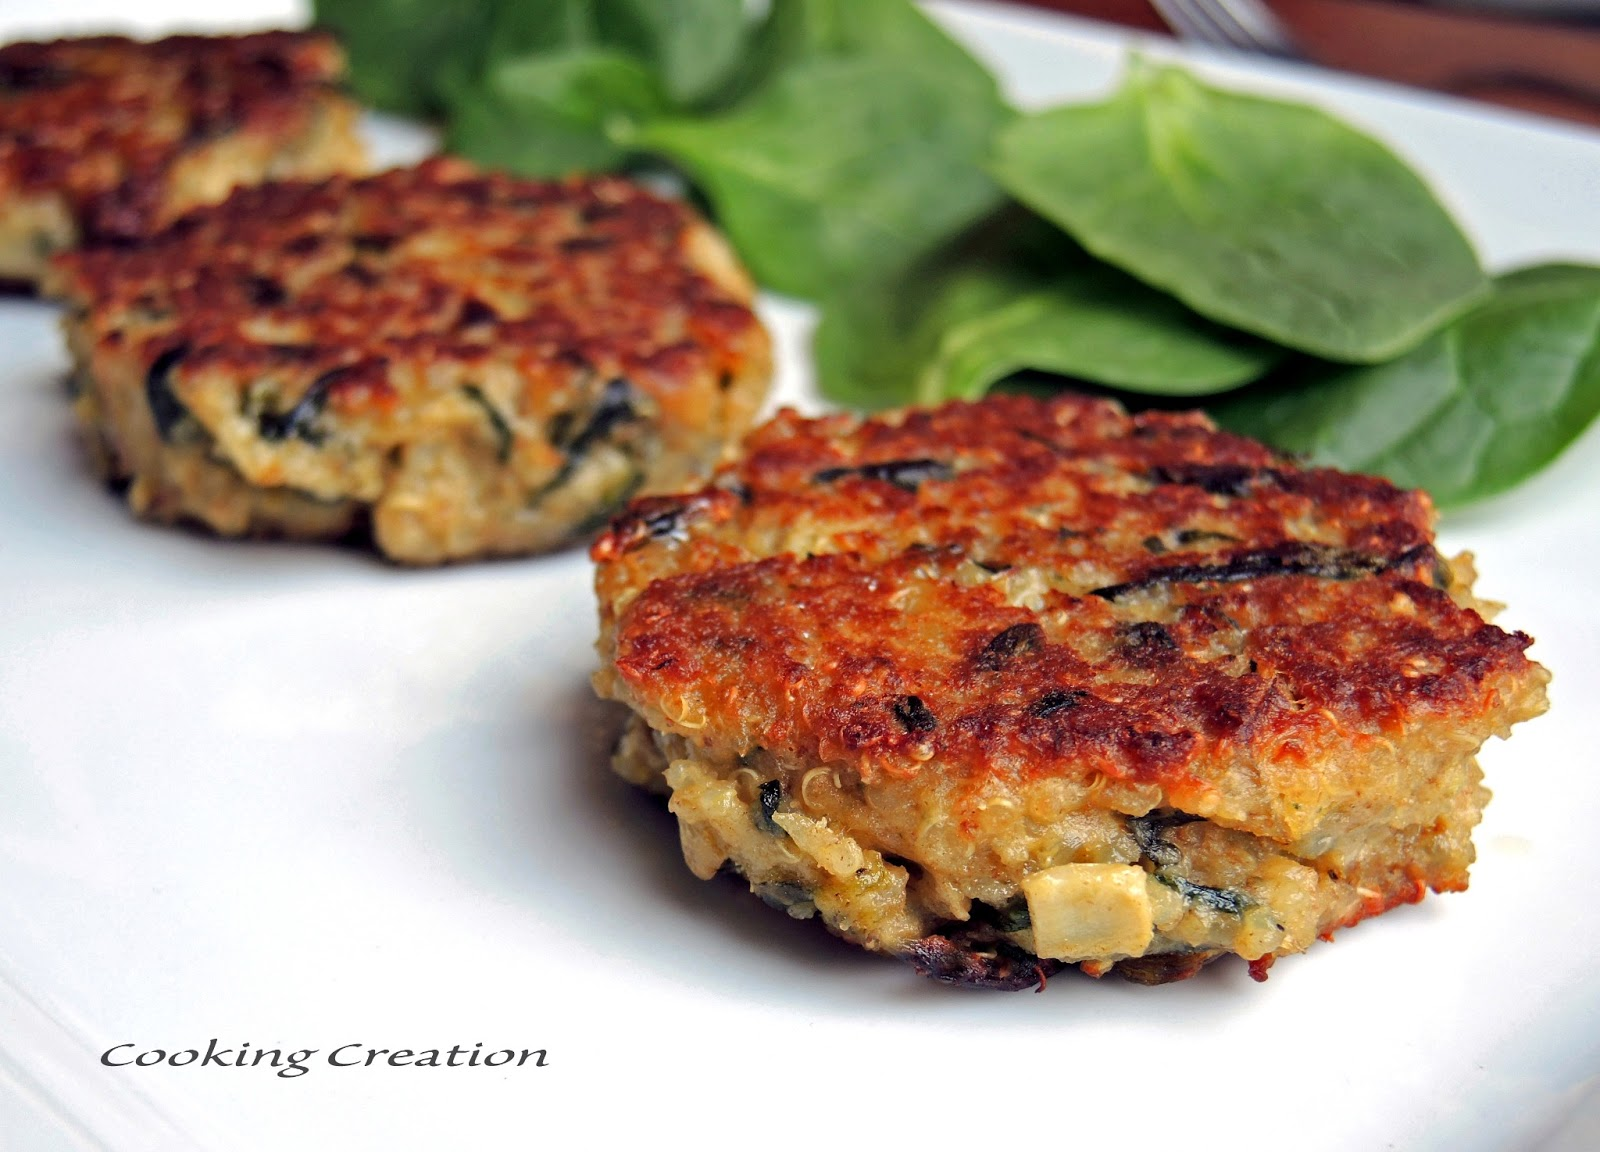 Cooking Creation: Quinoa Cakes with Artichoke, Spinach & Caramelized ...